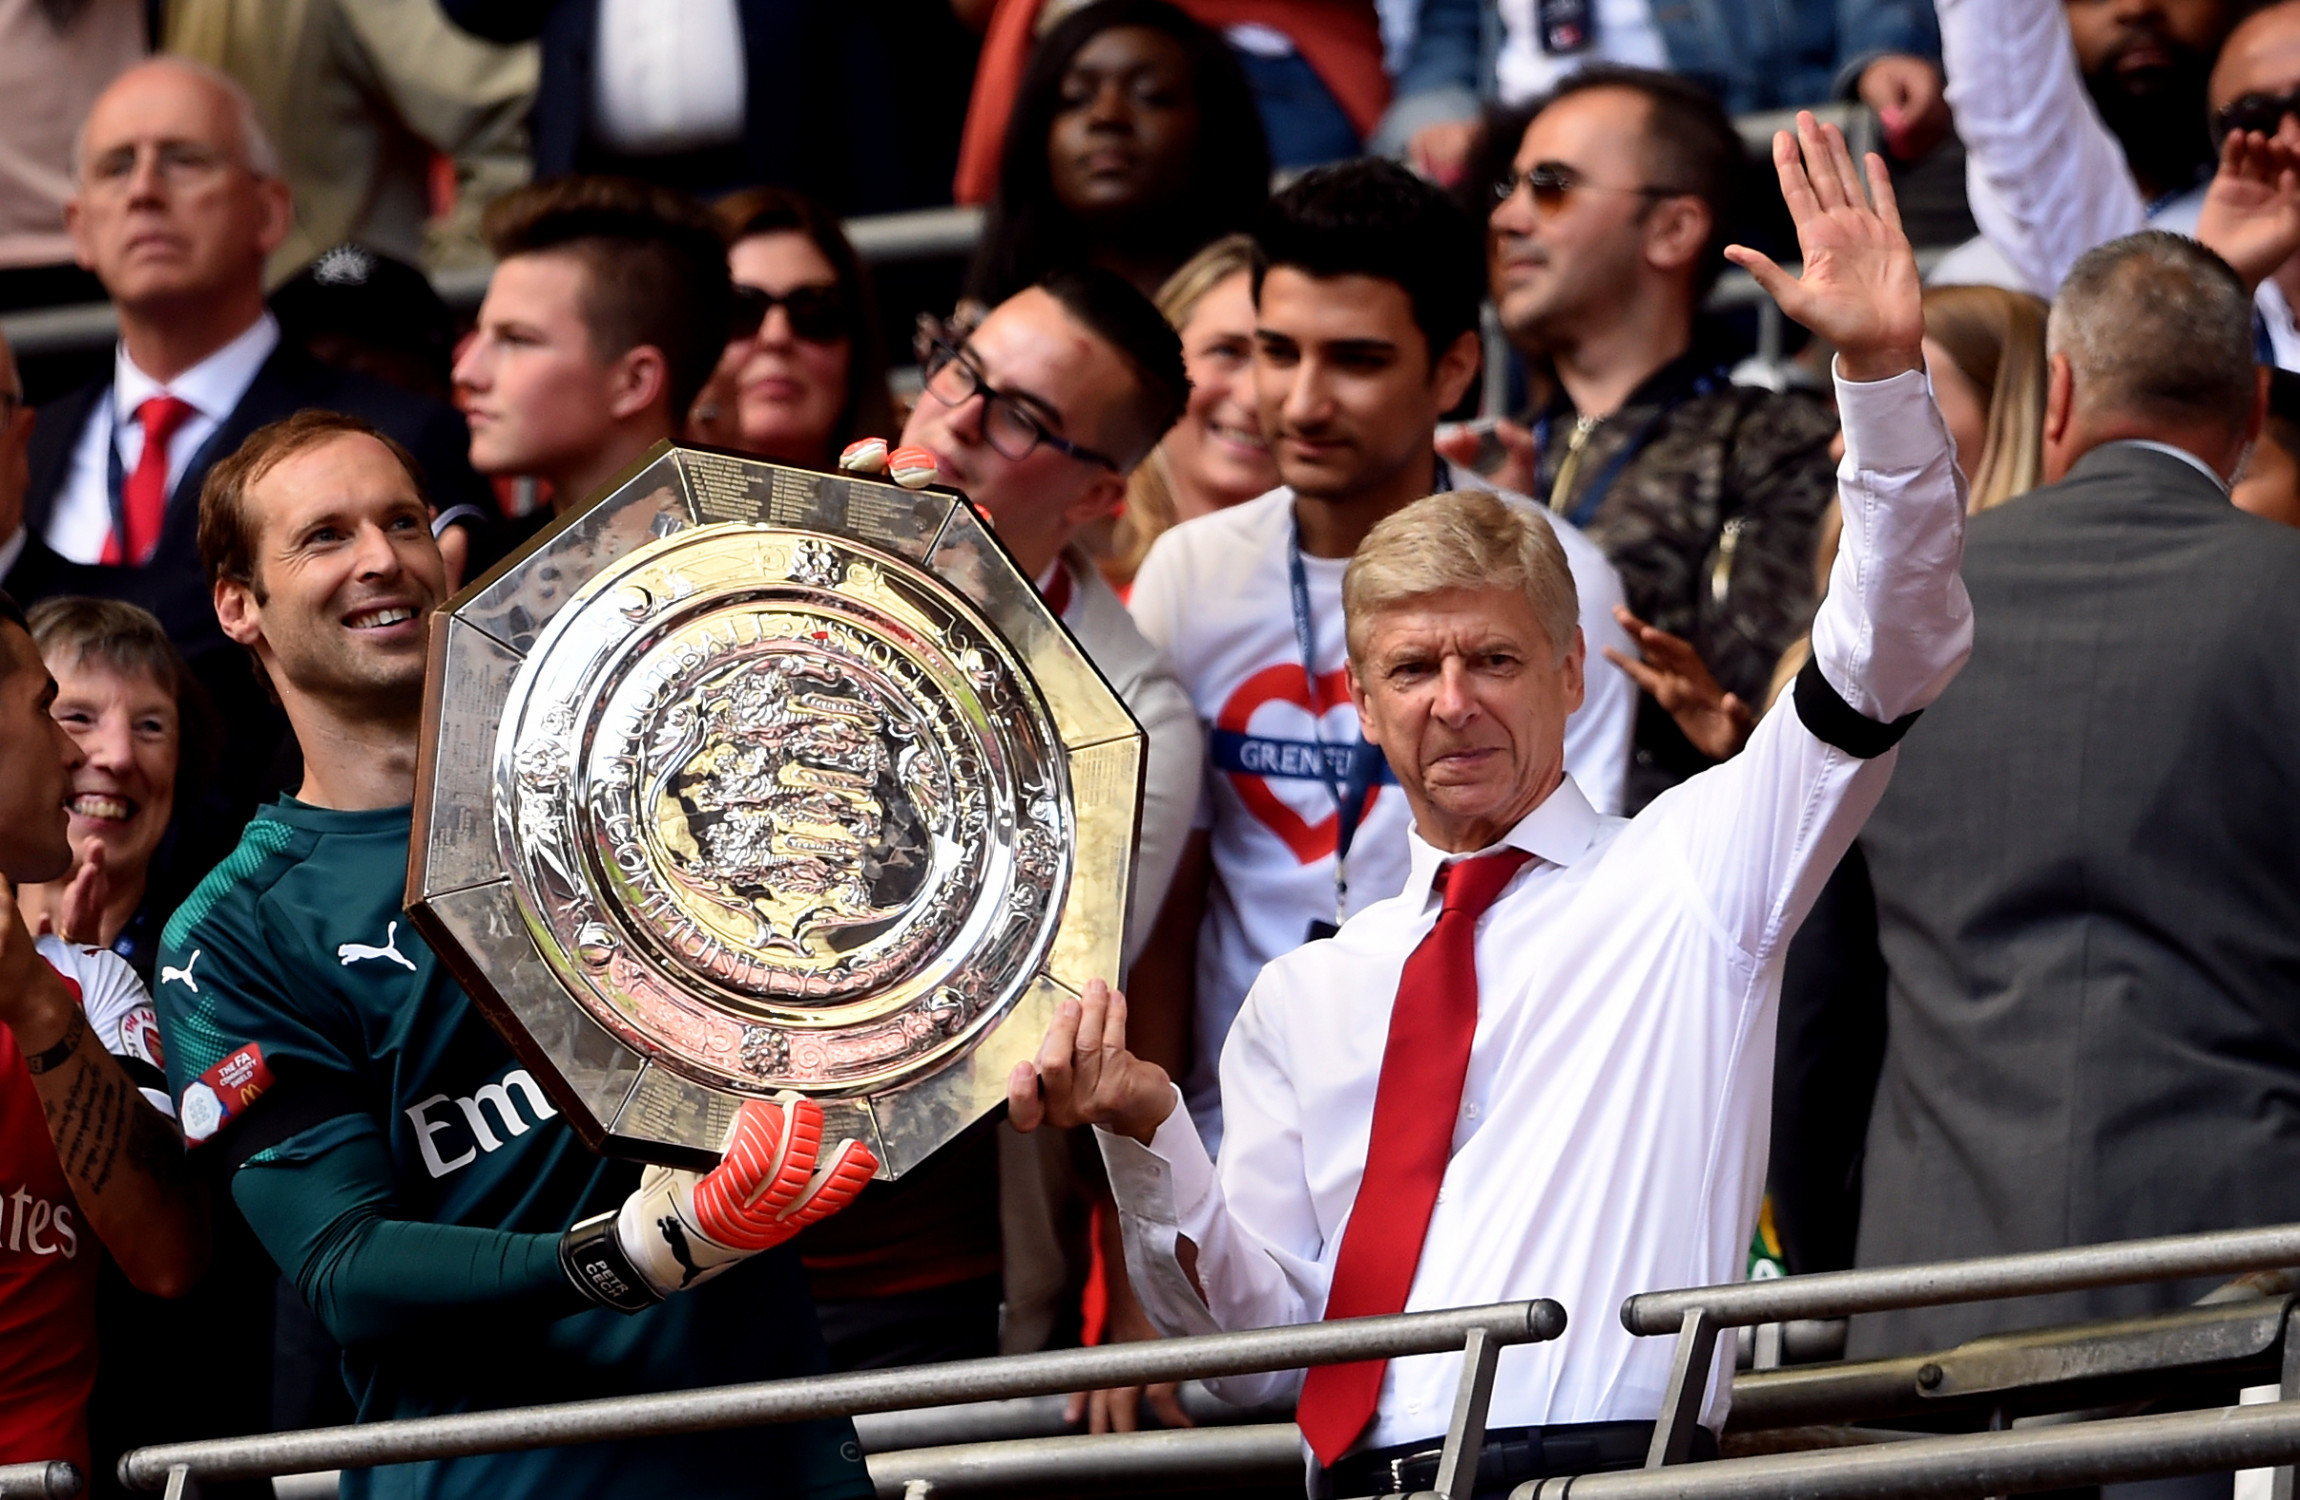 'We want to be united and together throughout the season ... Arsene Wenger Affair